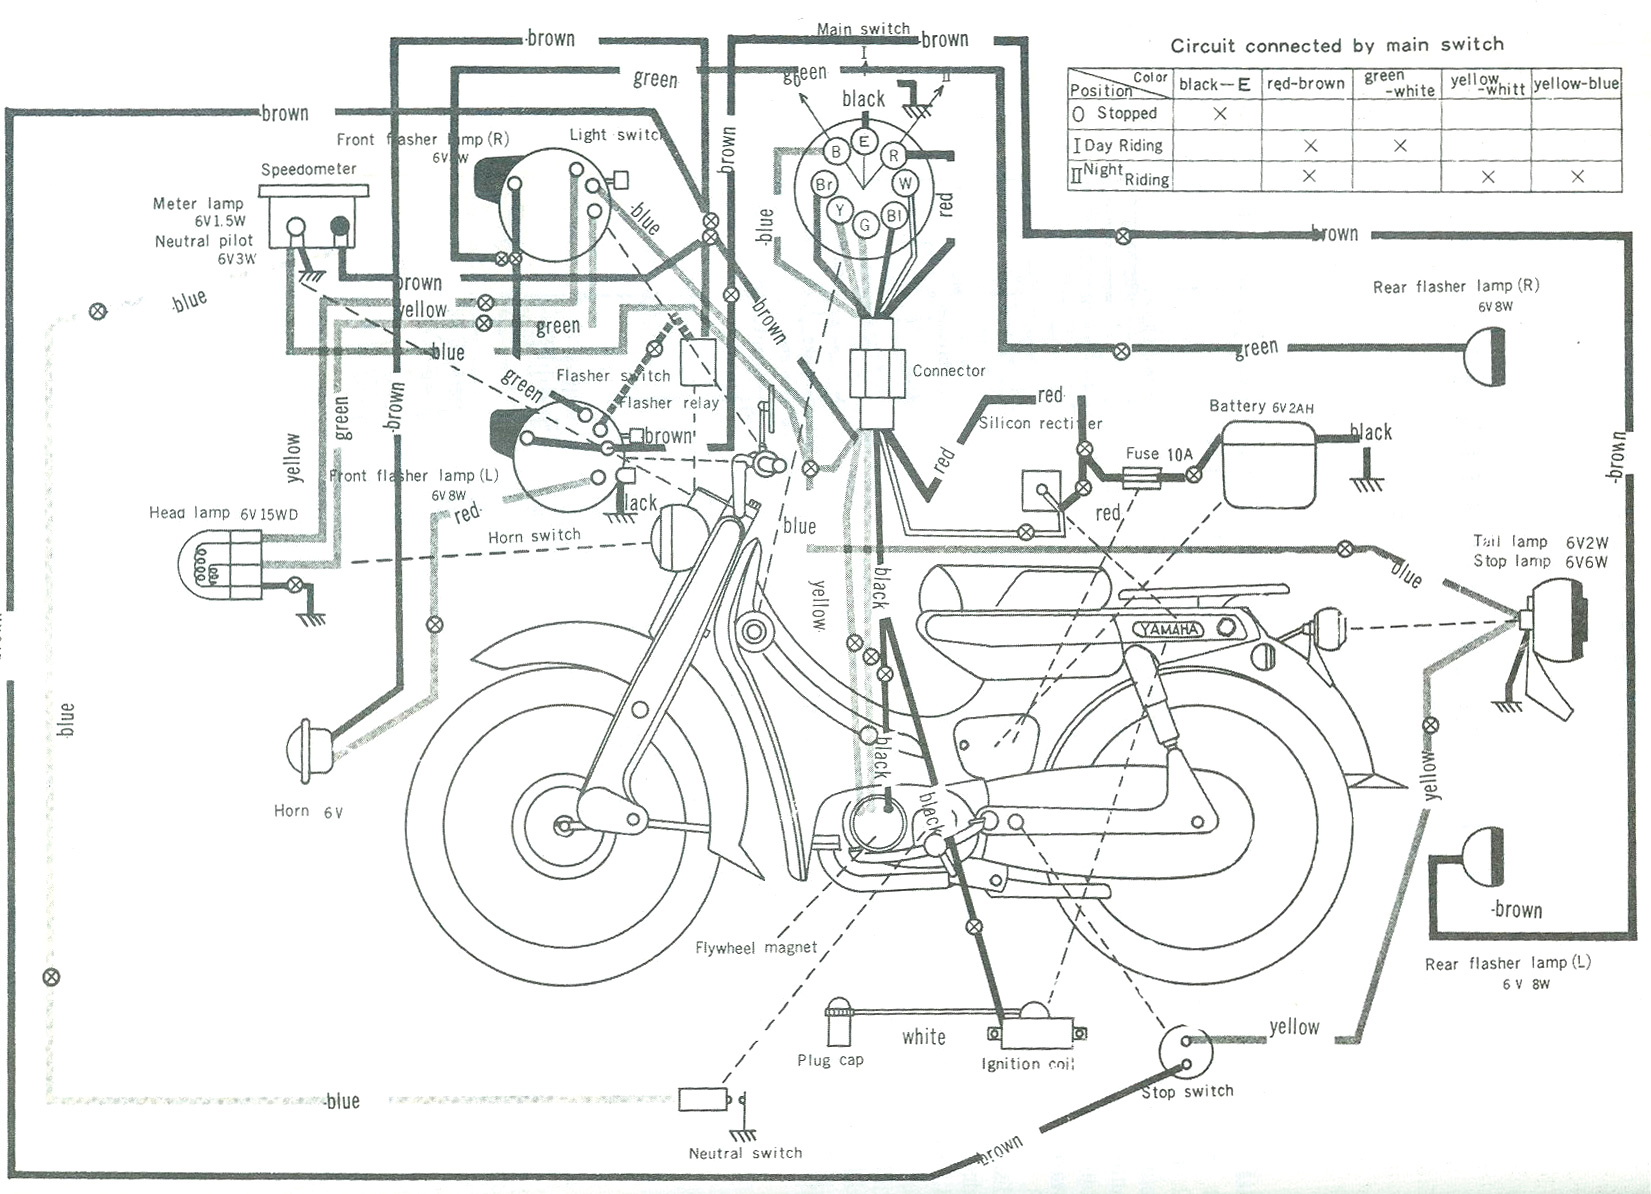 yamaha motorcycles wiring diagram wiring diagrams and schematics servicemanuals motorcycle how to and repair